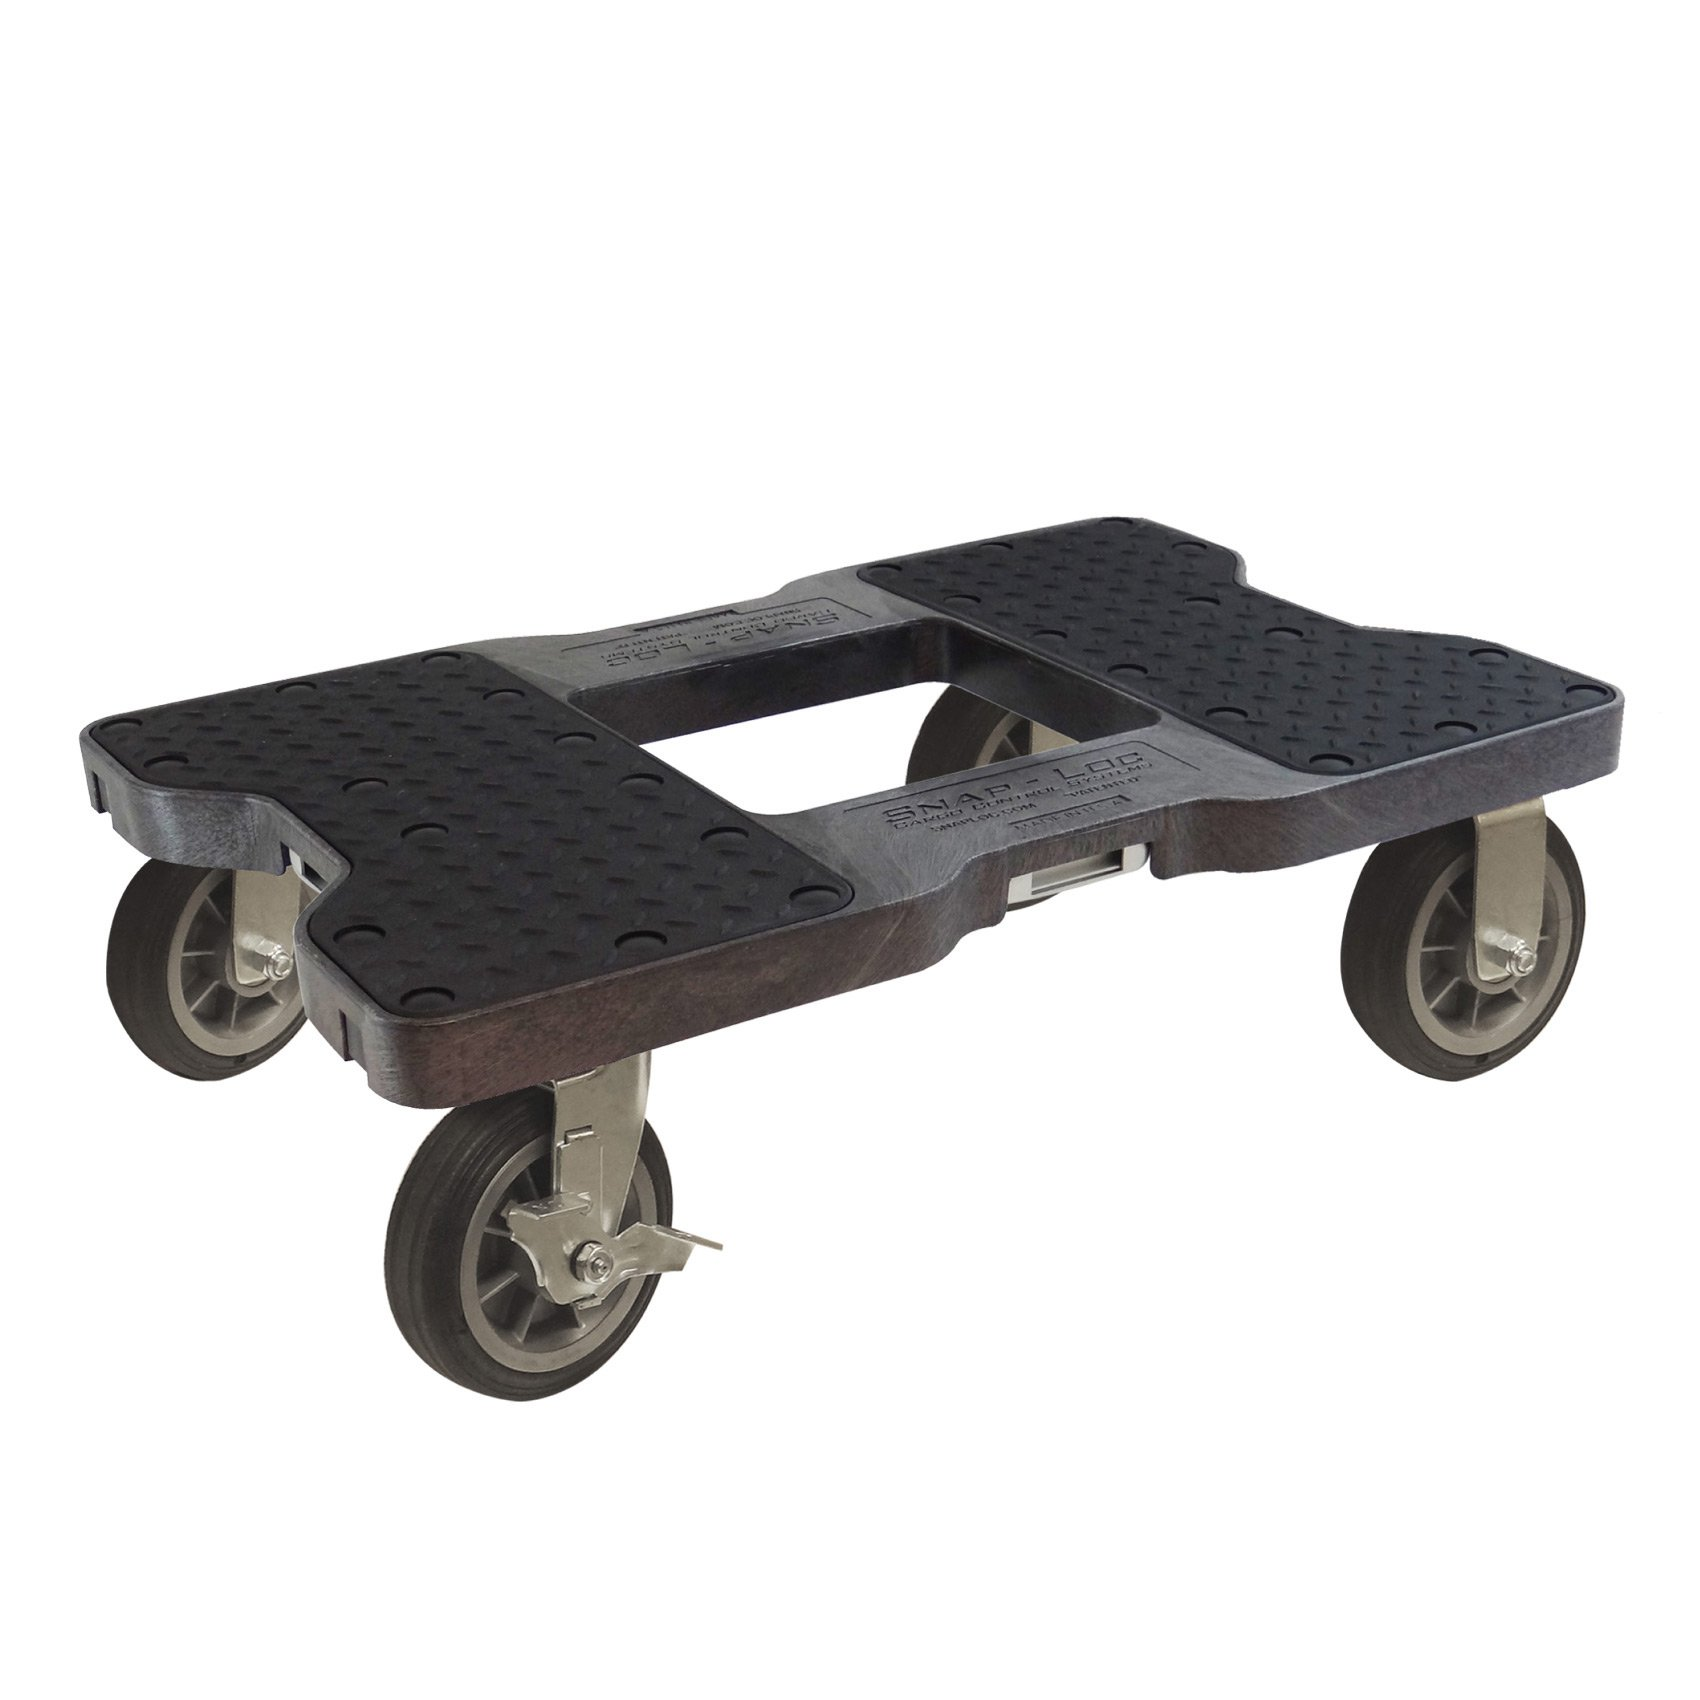 SNAP-LOC ALL-TERRAIN DOLLY BLACK (USA!) with 1500 lb Capacity, Steel Frame, 6 inch Casters and optional E-Strap Attachment